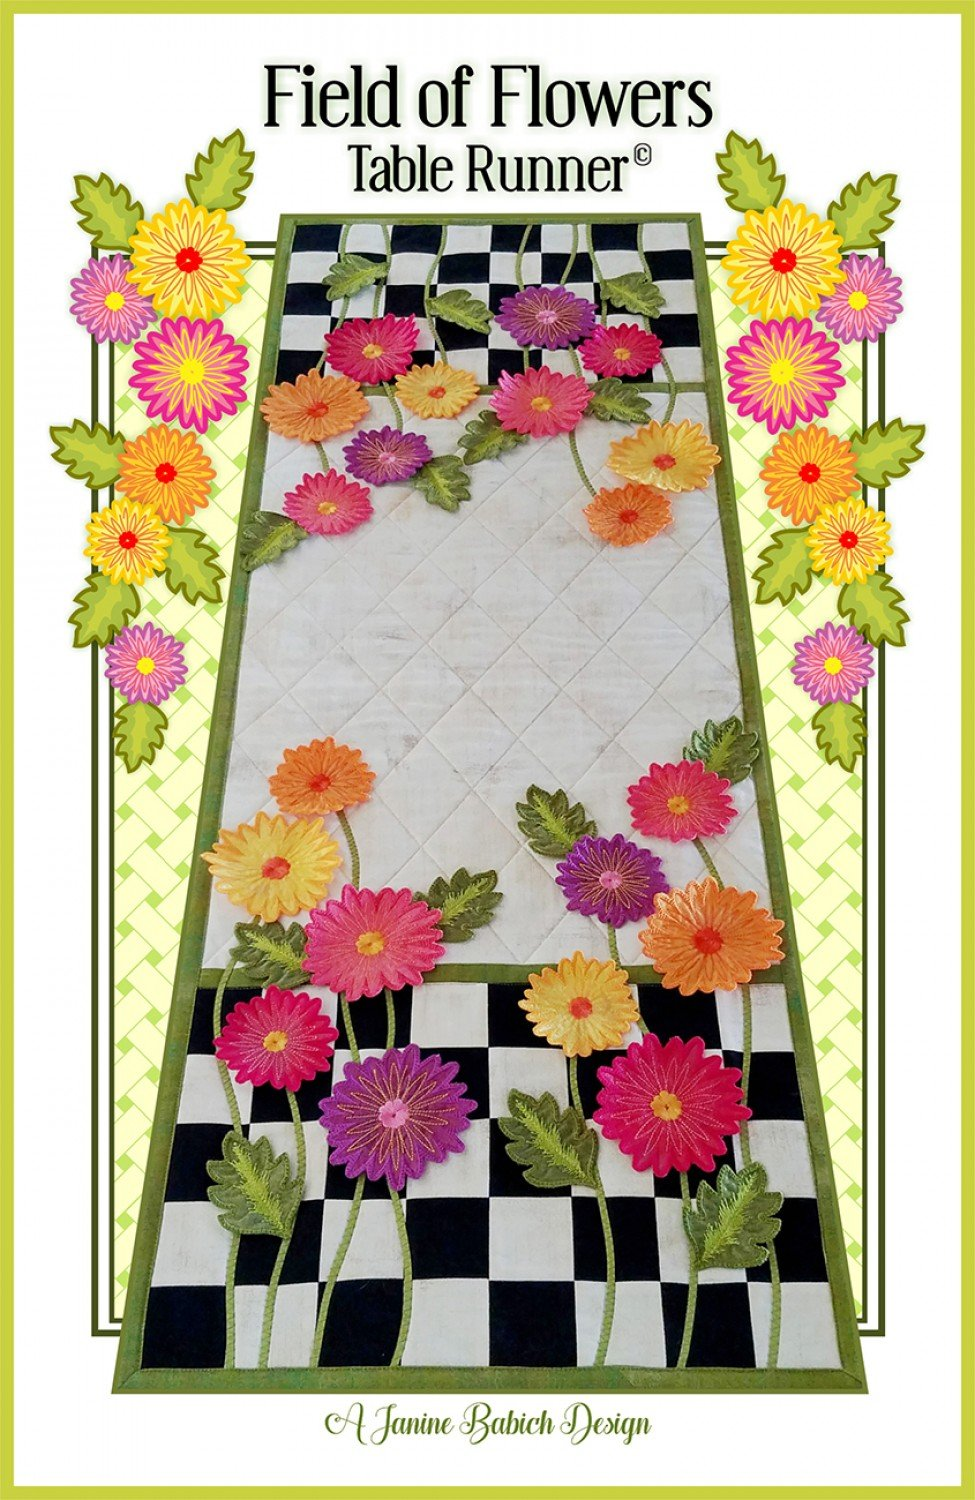 Field of Flowers Embroidery CD